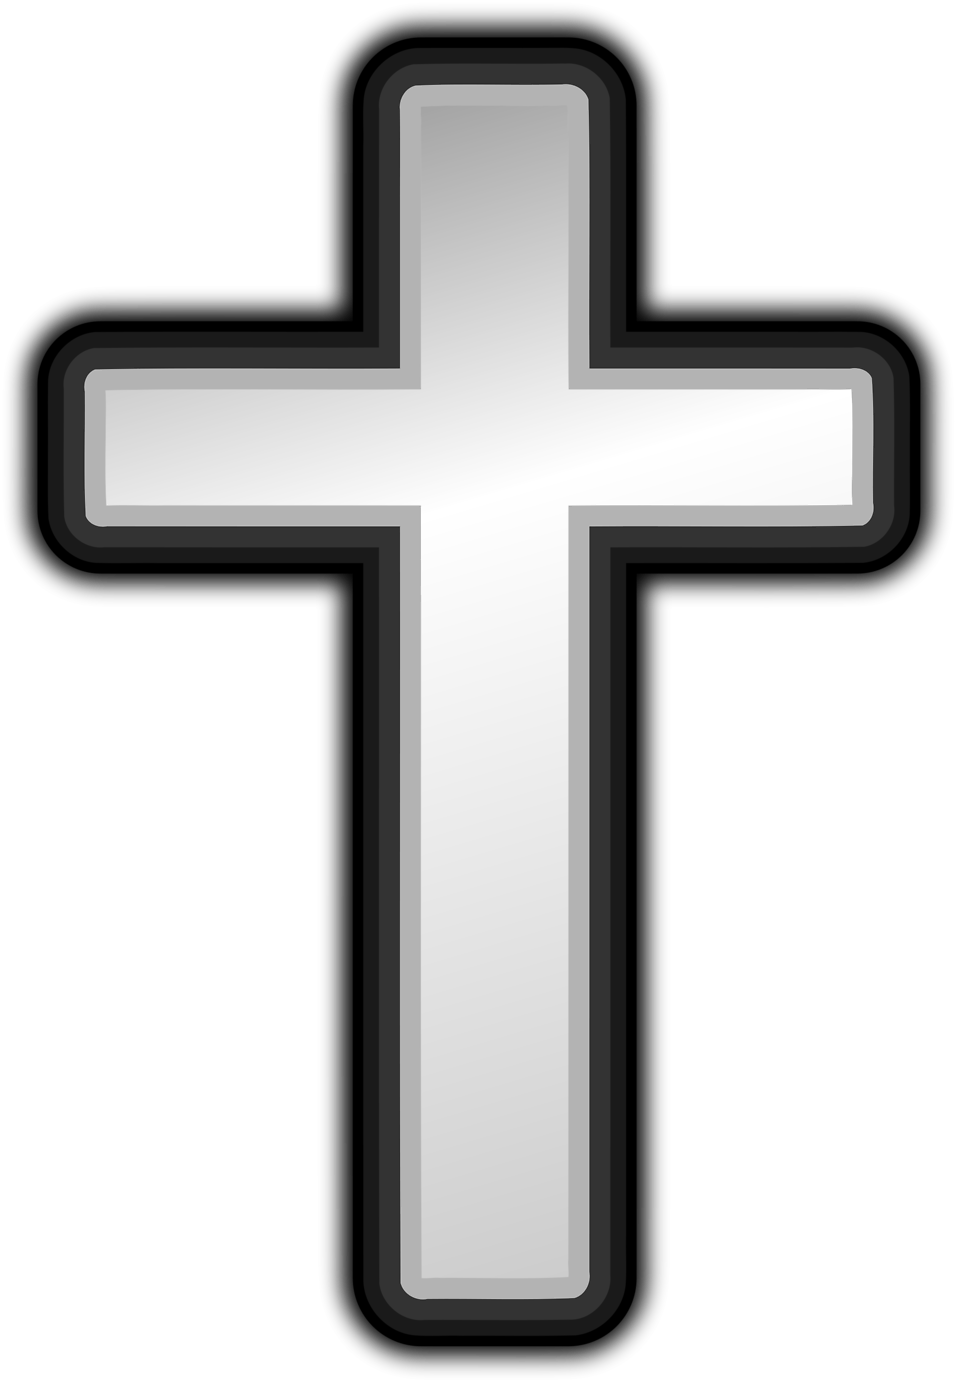 Cross   Free Stock Photo   Illustration Of A White Cross     16542